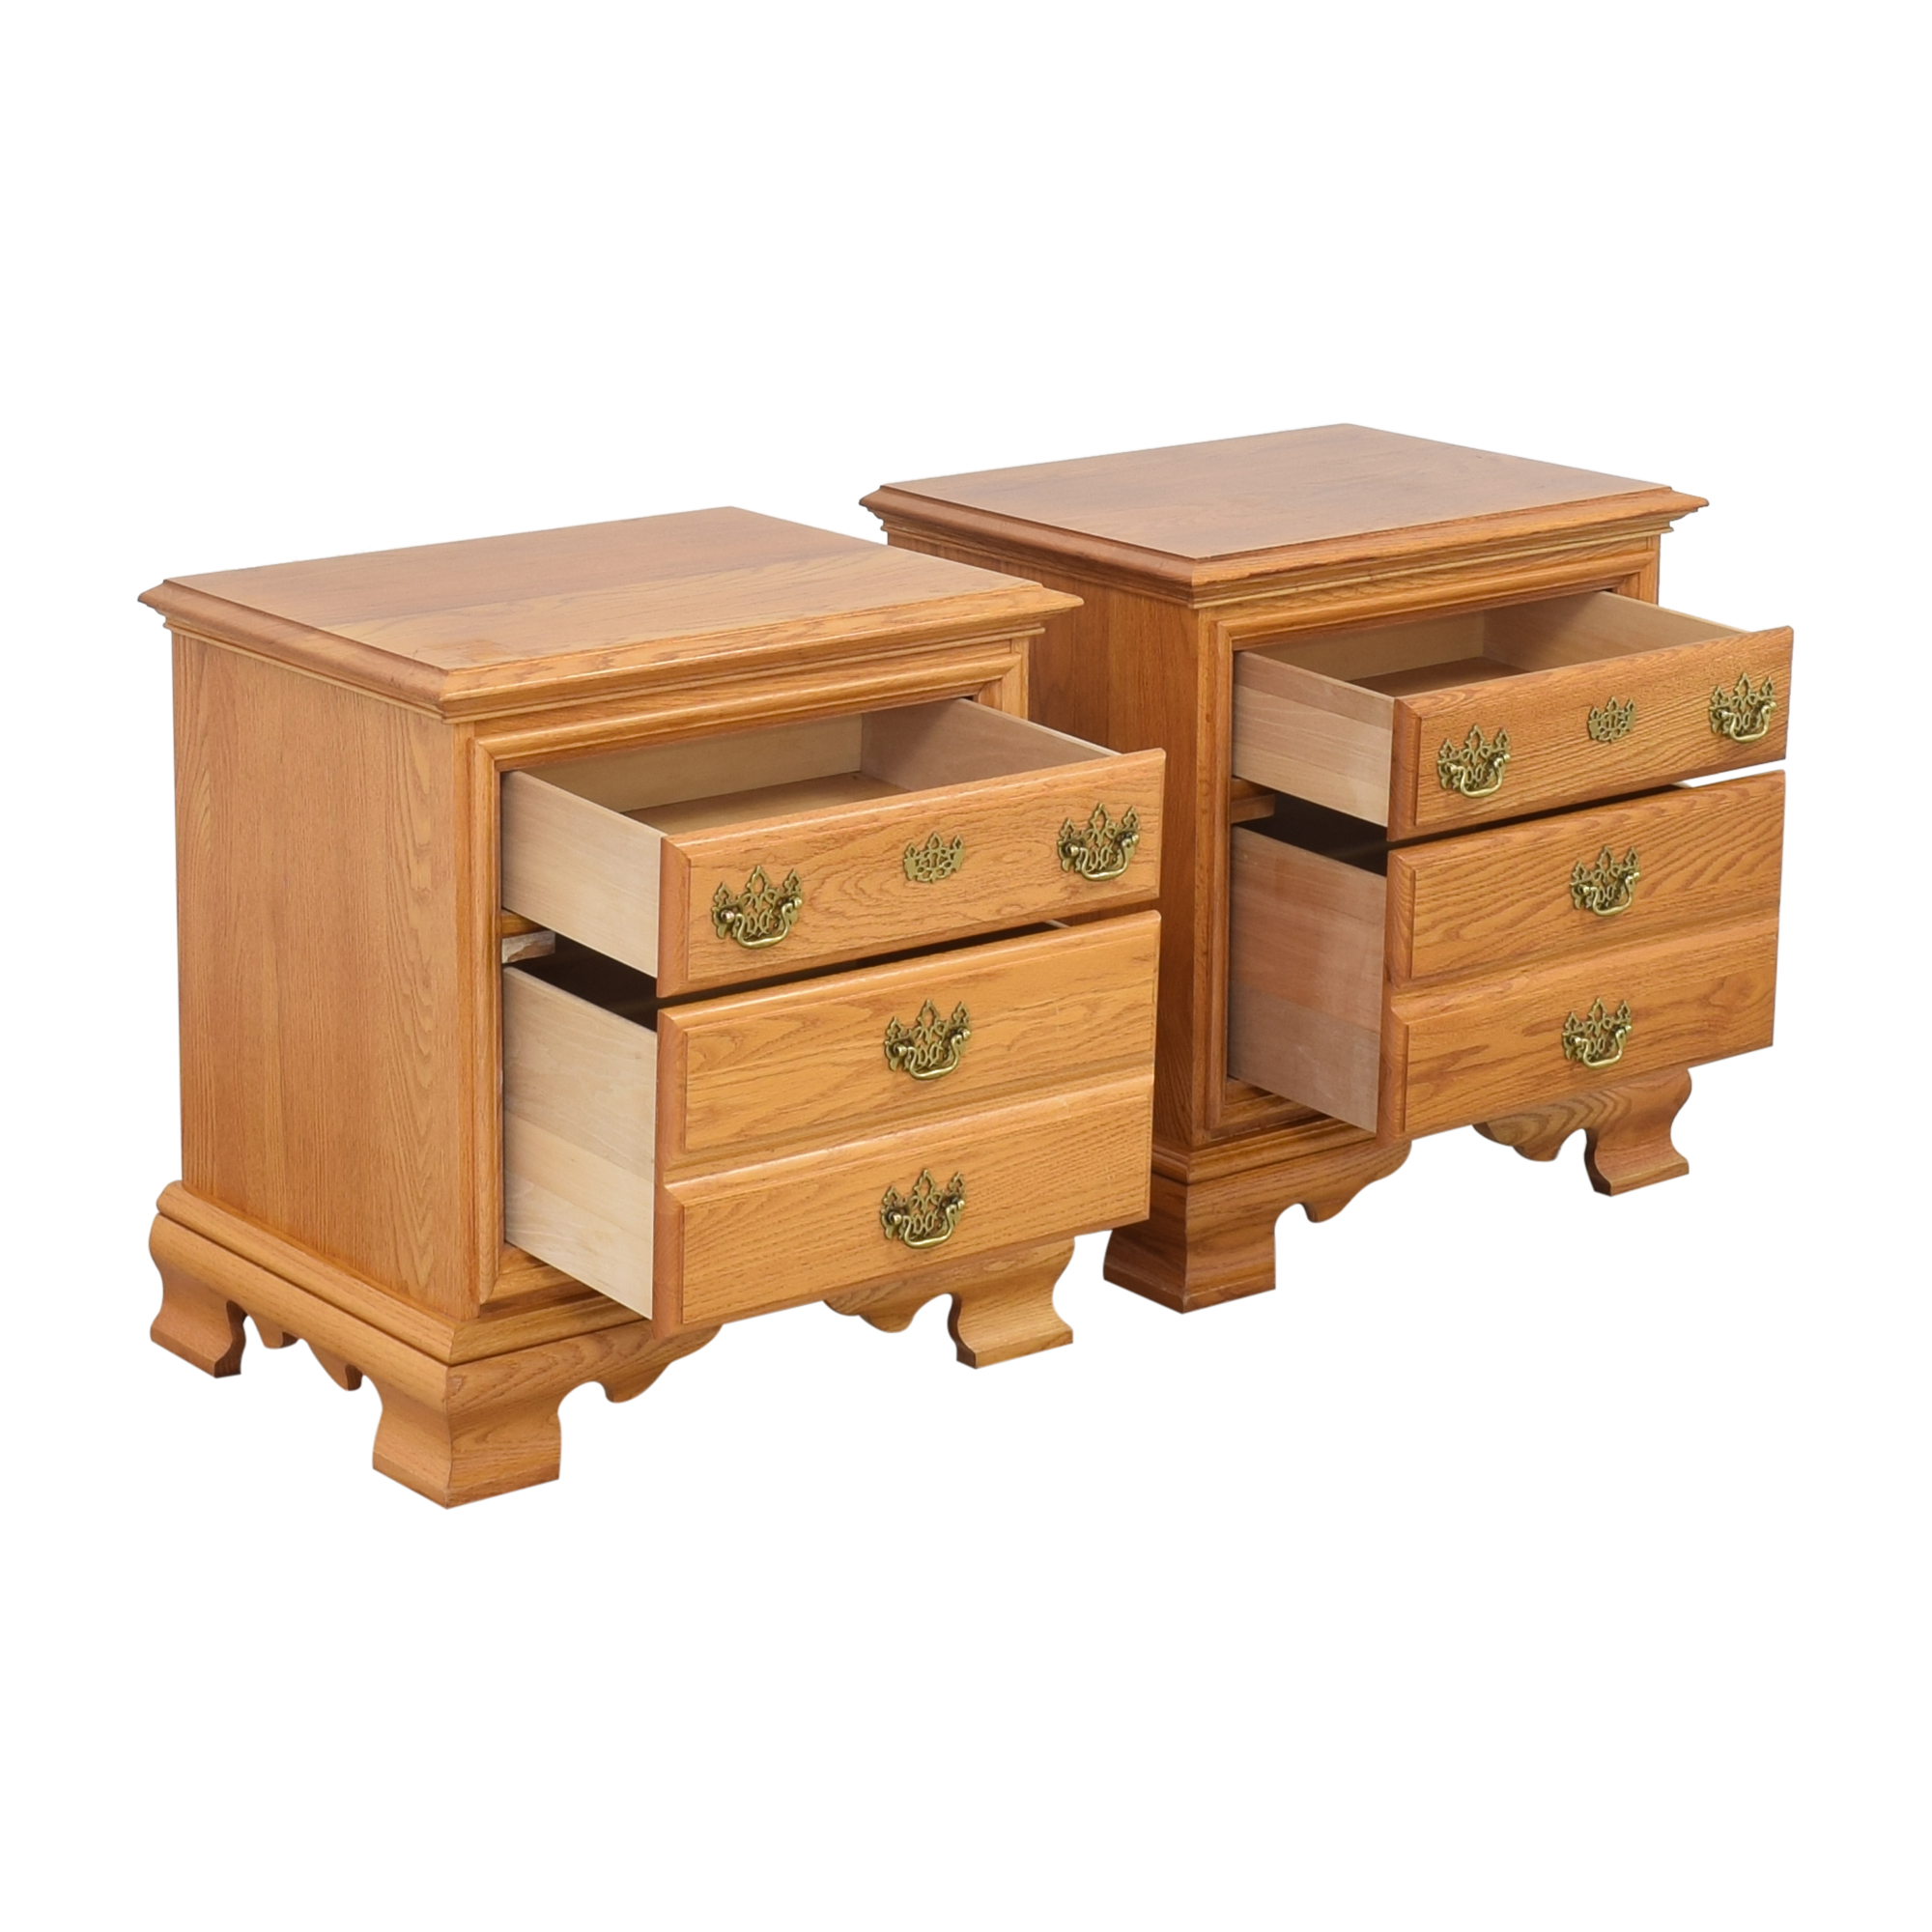 Masterfield Furniture Masterfield Furniture Two Drawer End Tables dimensions